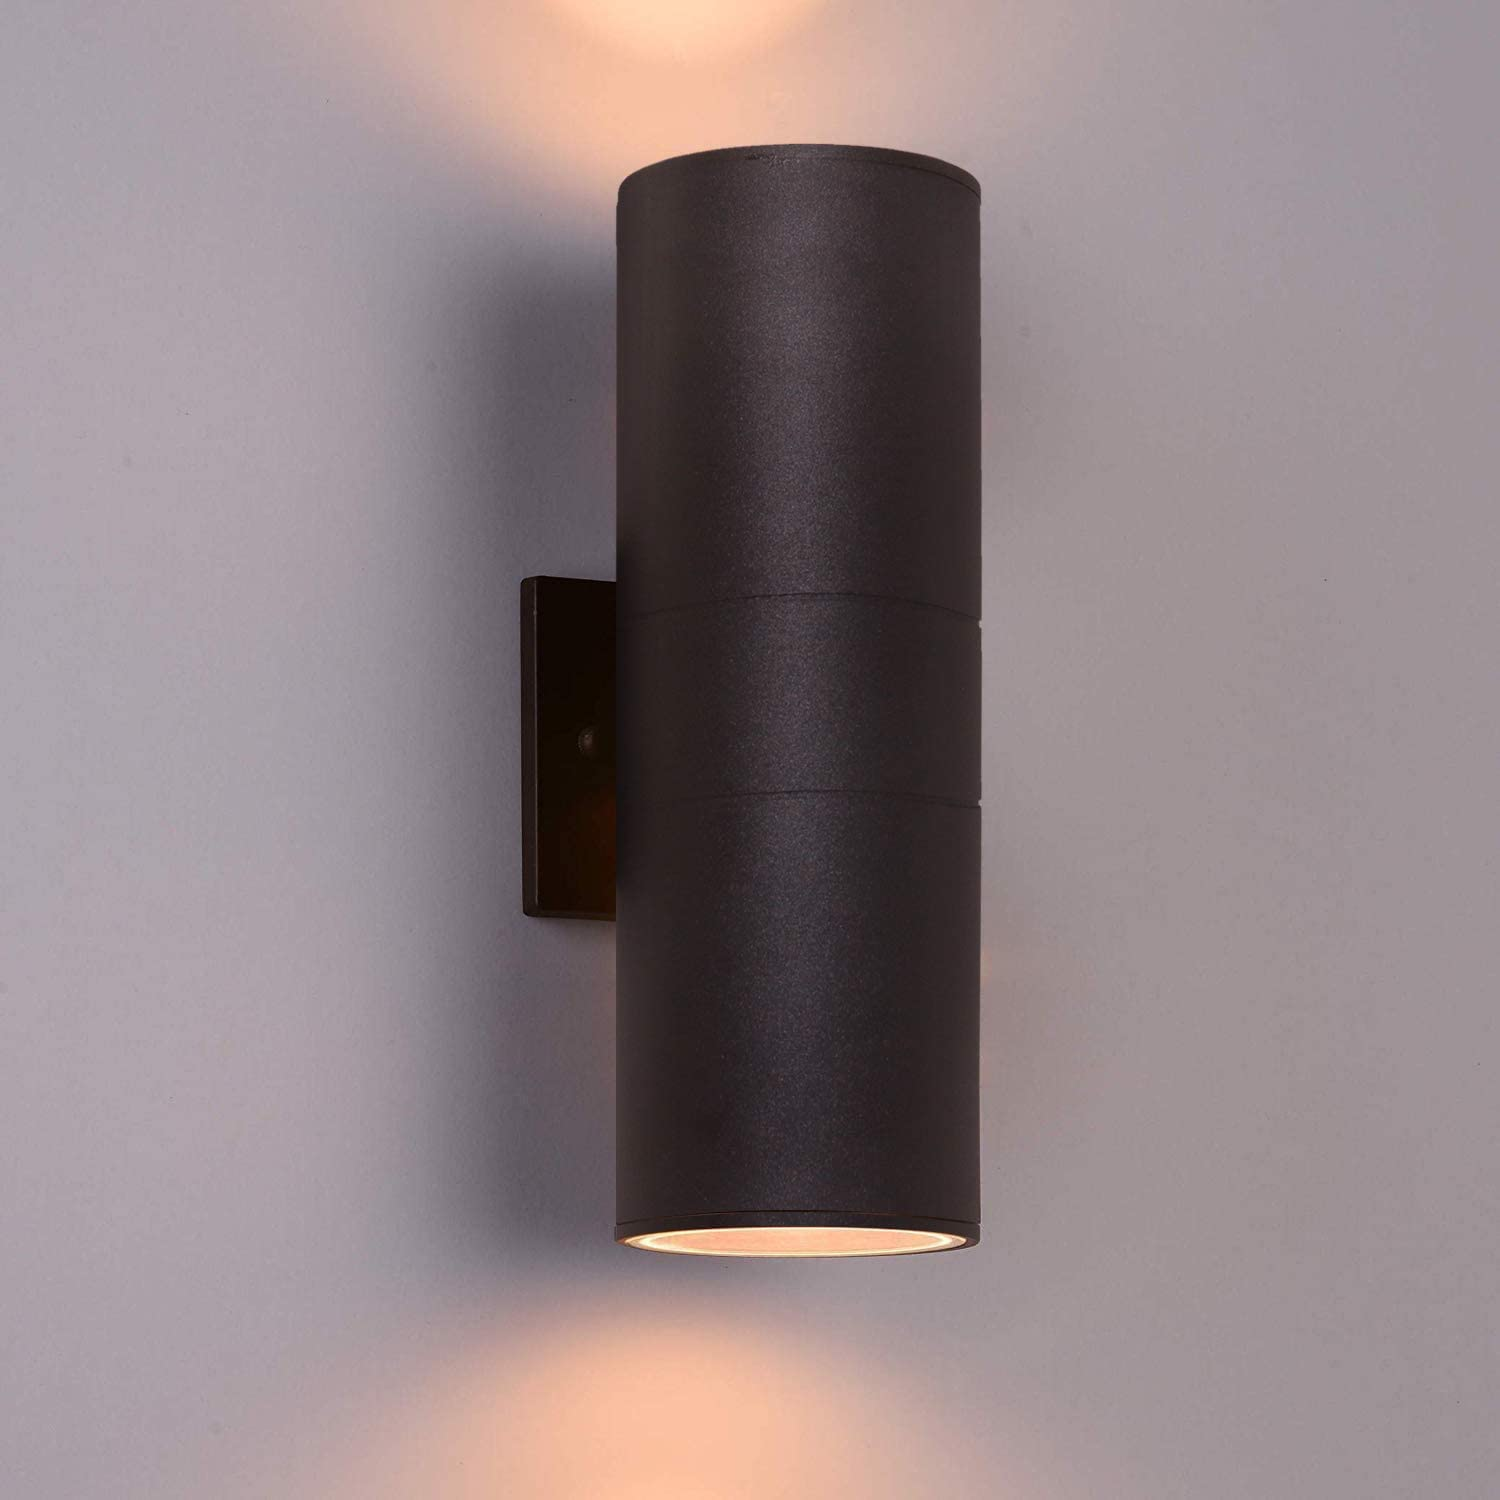 Outdoor Wall Light,Wowlite Exterior Lighting - ETL Listed, Matte Black Stainless Steel Waterproof Wall Mount Cylinder Design - Up Down Light Fixture for Porch, Backyard and Patio (1 Pack)